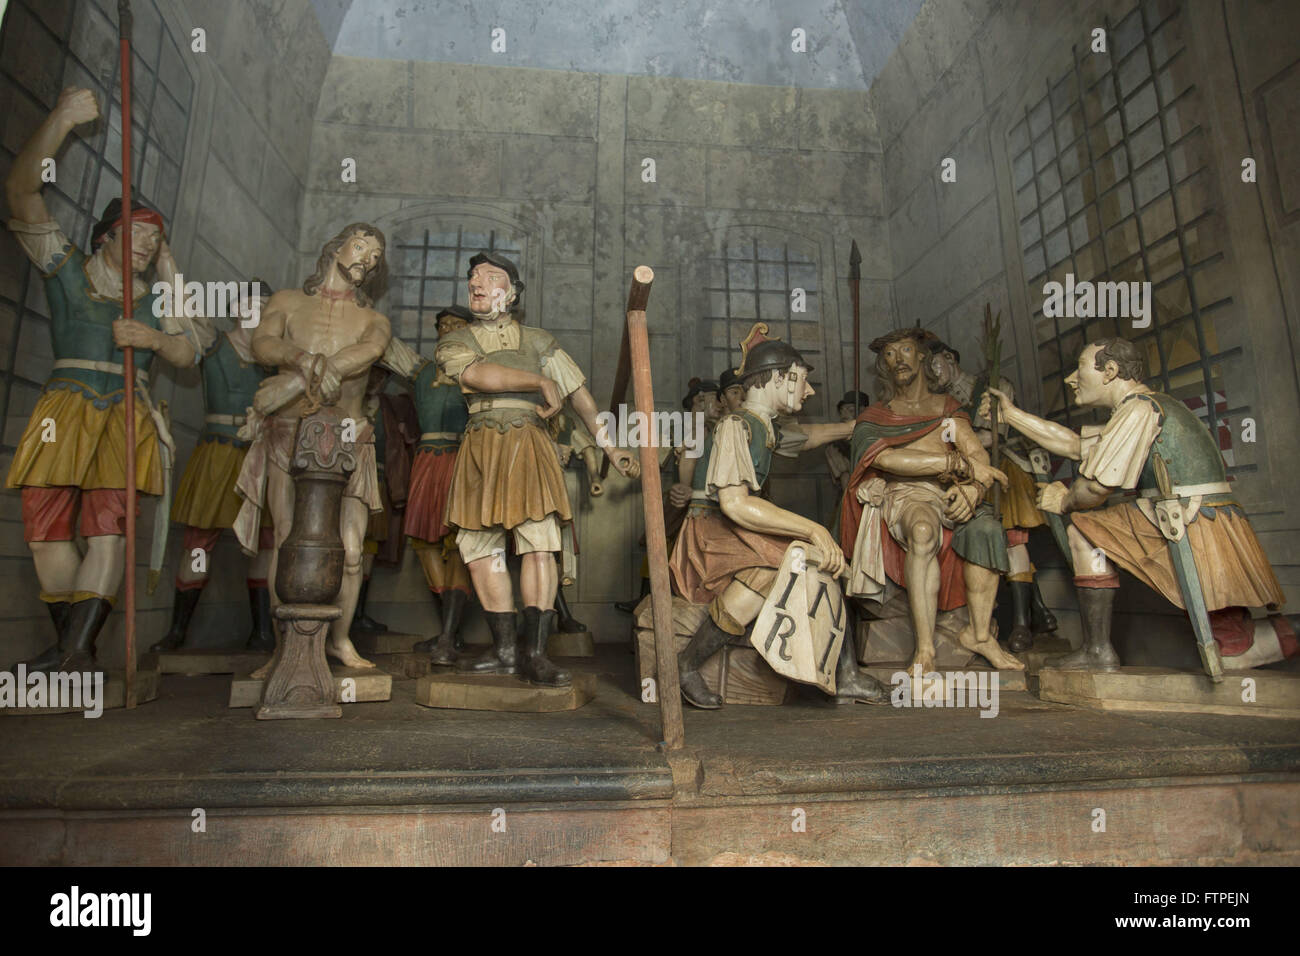 Step flogging and Coronation of Jesus Christ - the life-size sculptures in cedar - Stock Image